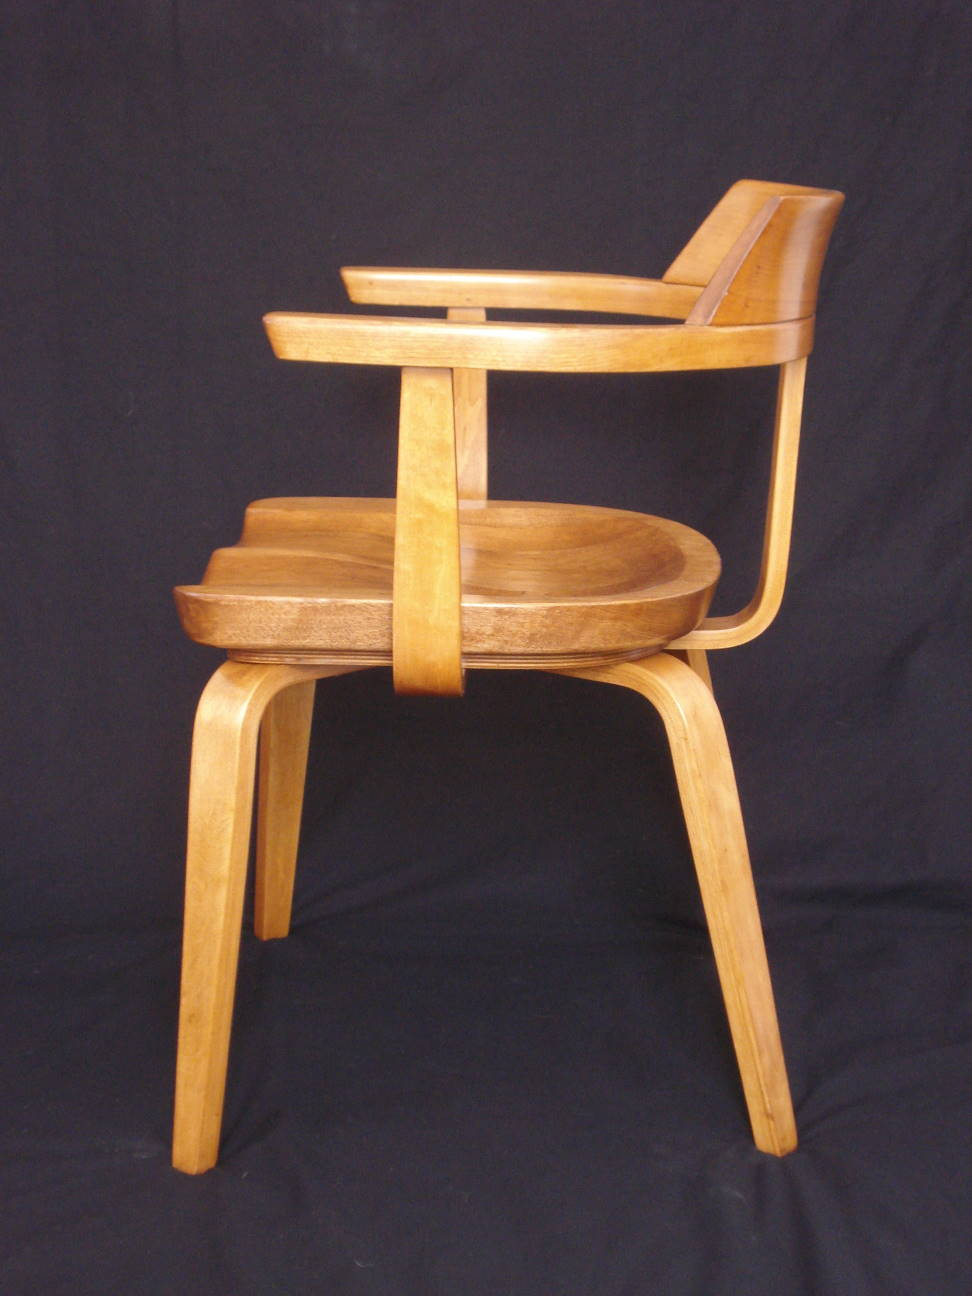 Thonet chair restored by Erik Warner, 2015.